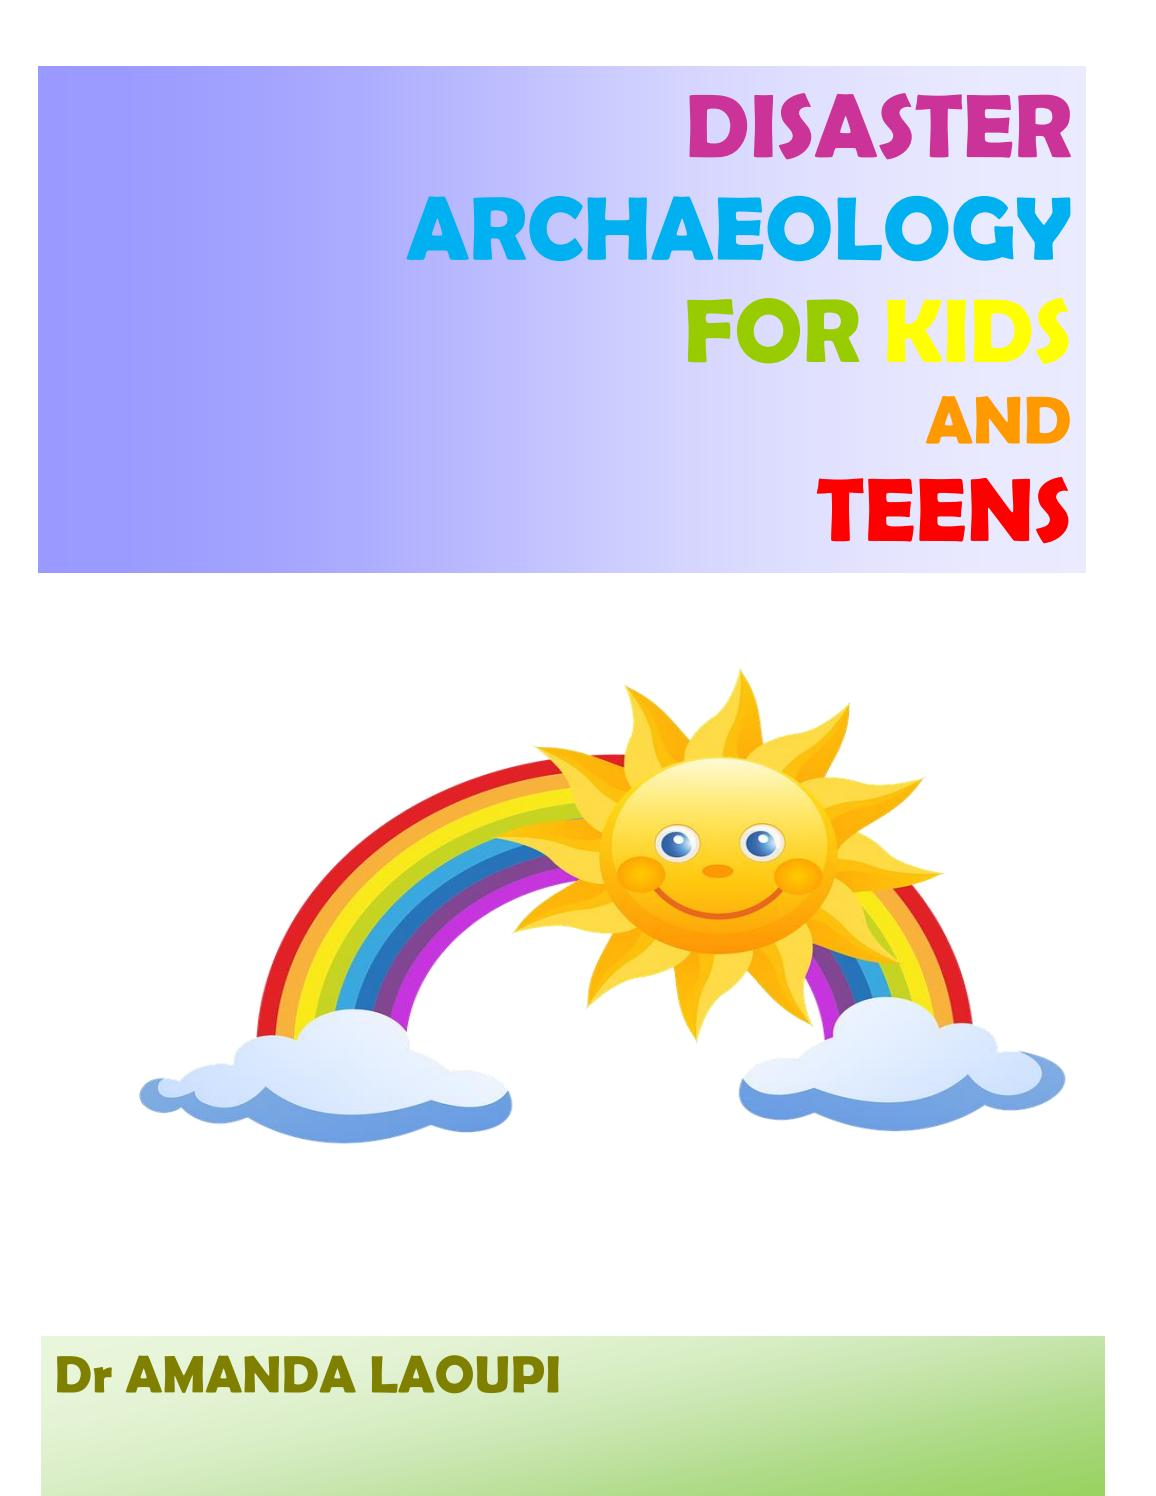 Disaster Archaeology For Kids And Teens By Amanda Laoupi Issuu